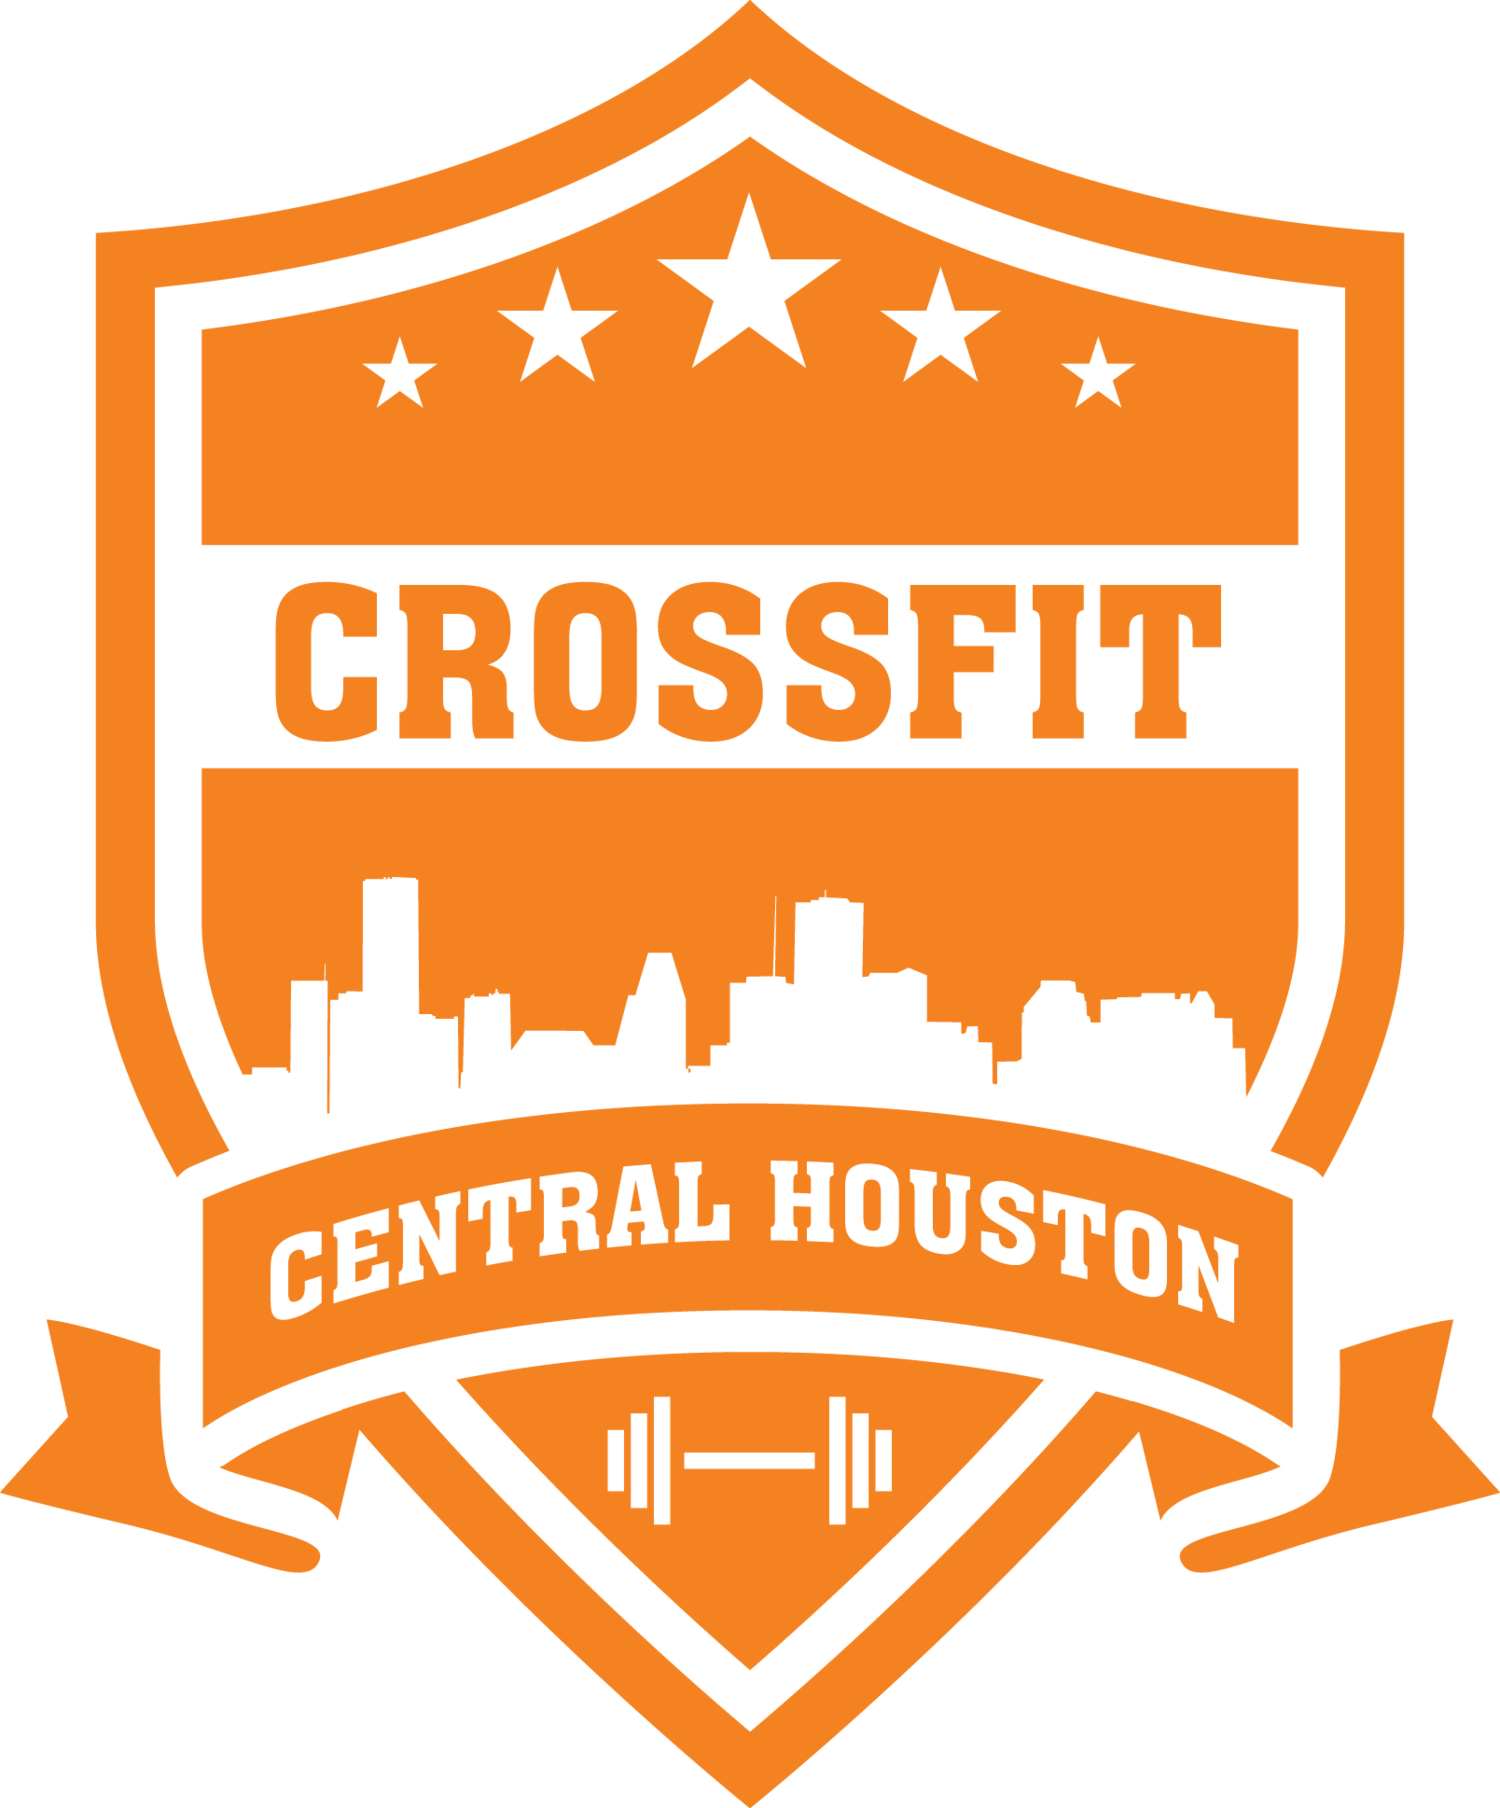 CrossFit Central Houston